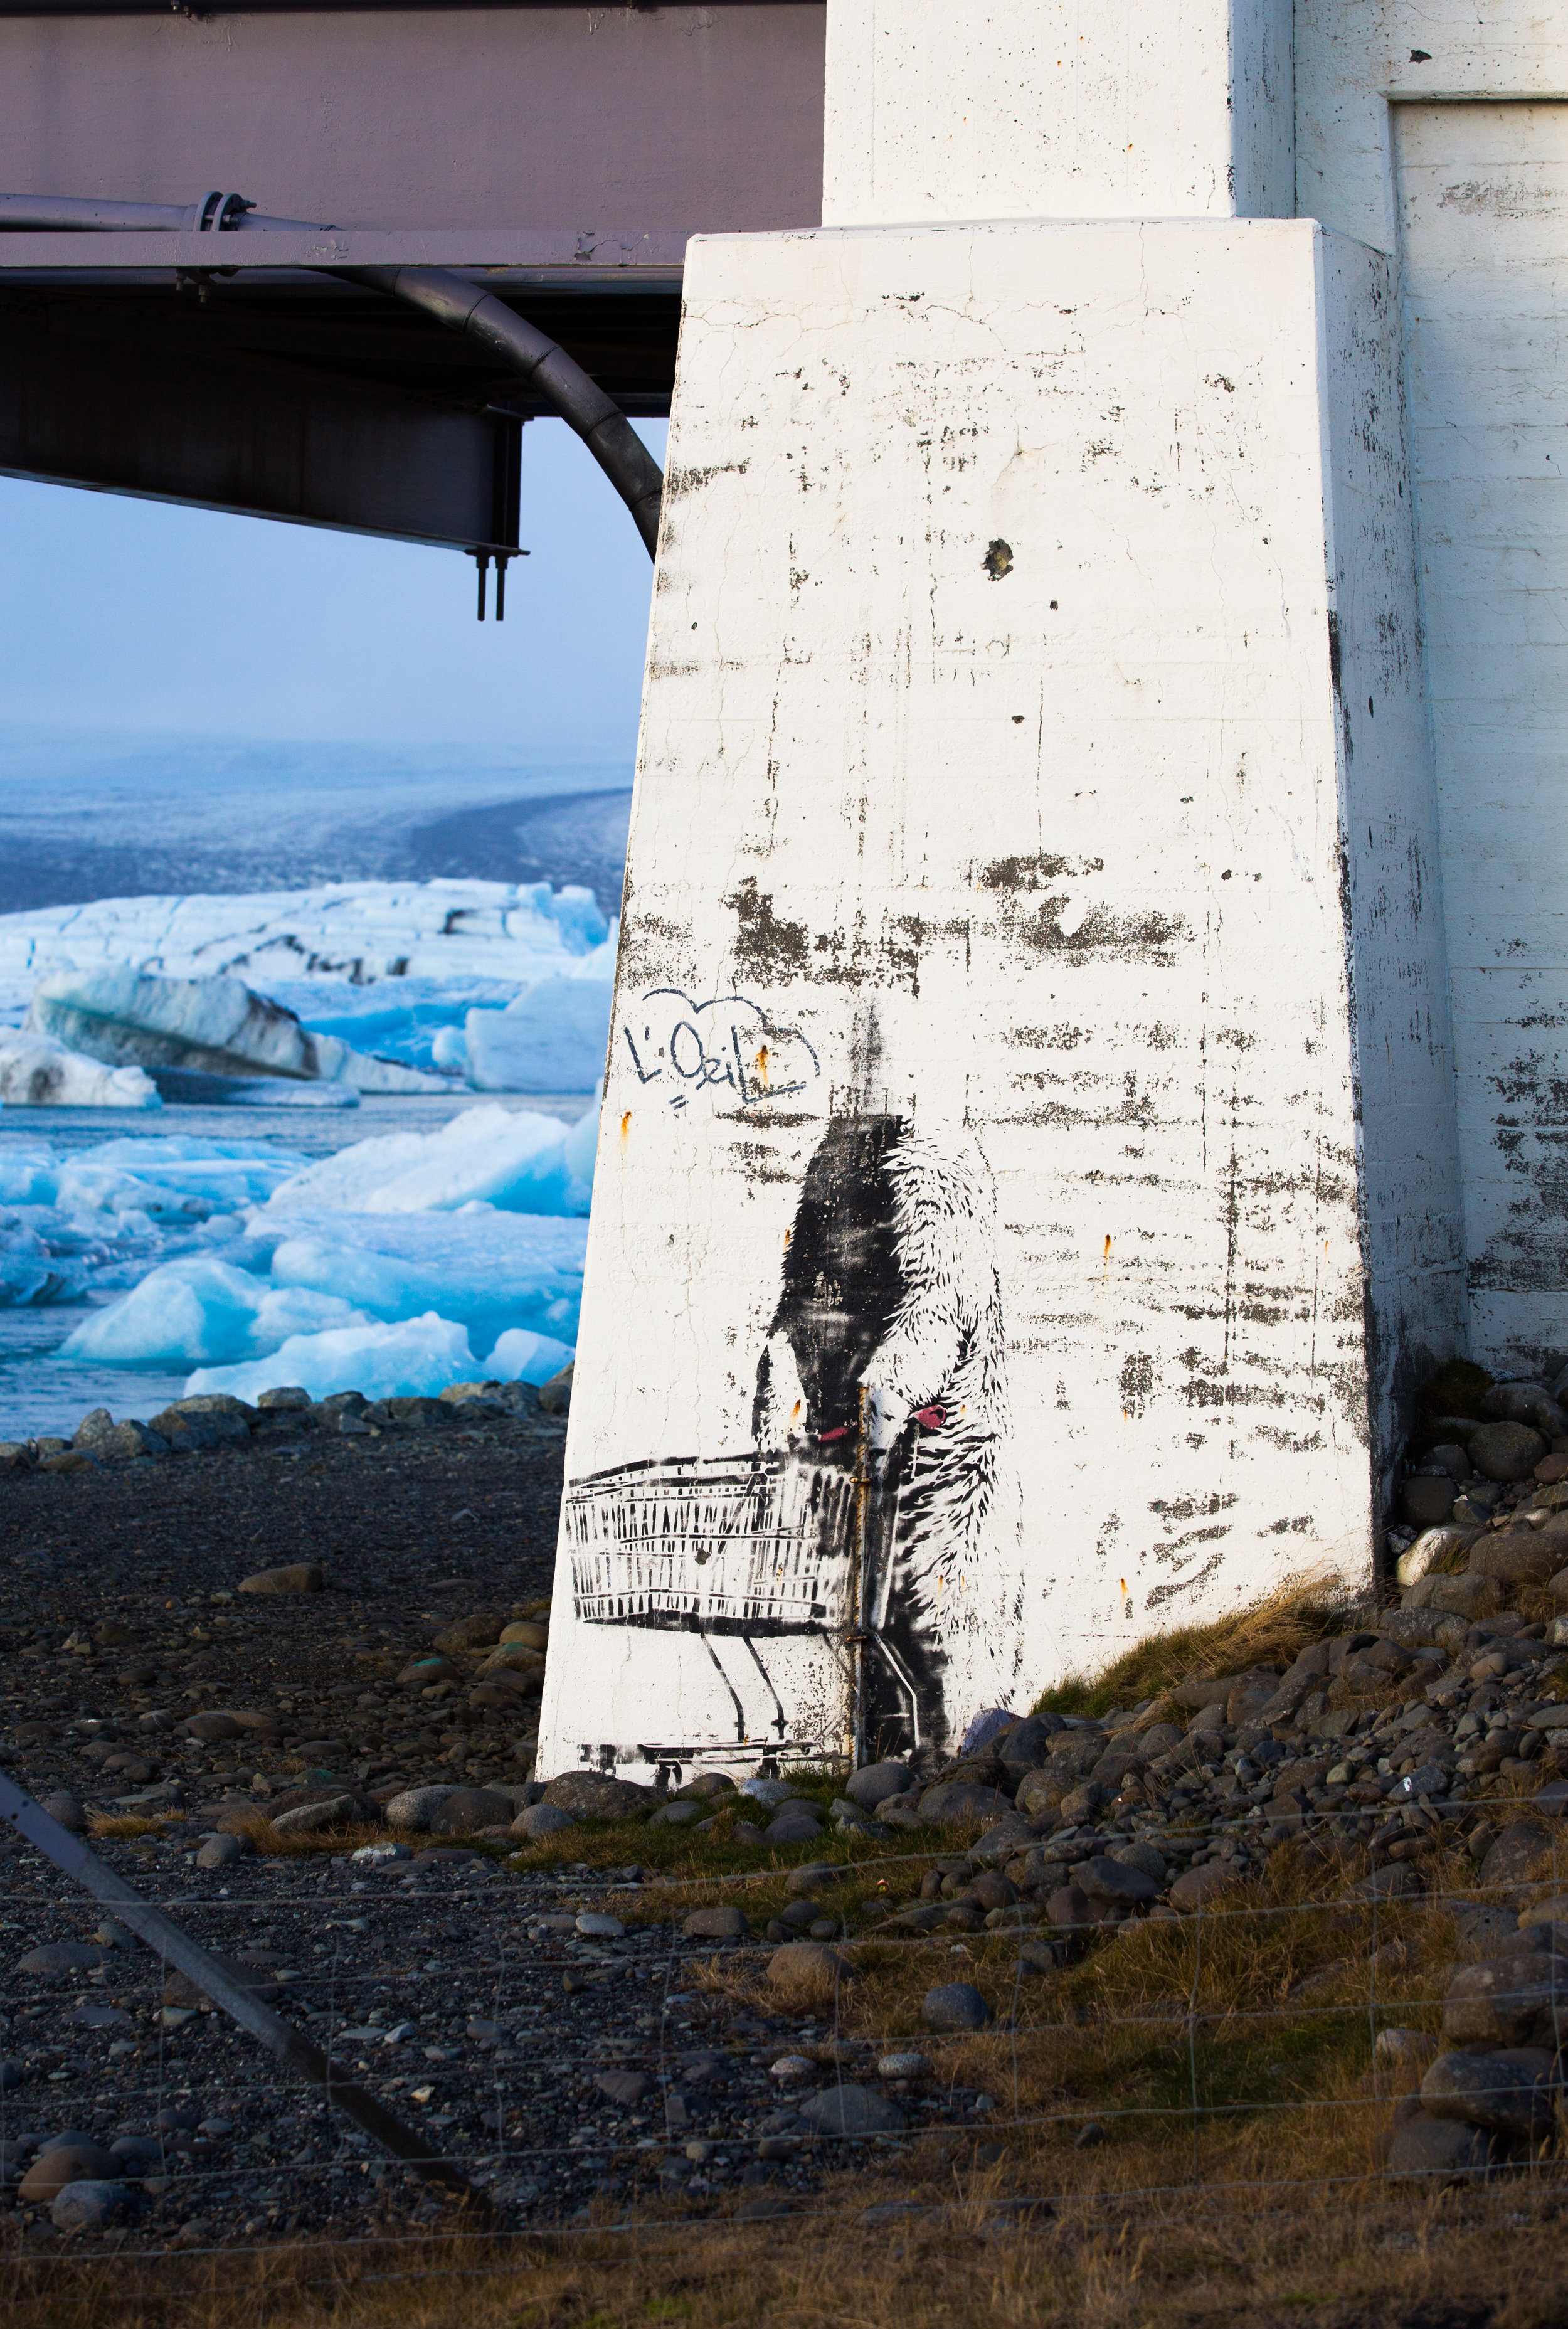 The rumor around here is that the graffiti on the bridge near Jokulsarlon was done by Banksy, but was in fact the art of Norwegian street artist Poble.